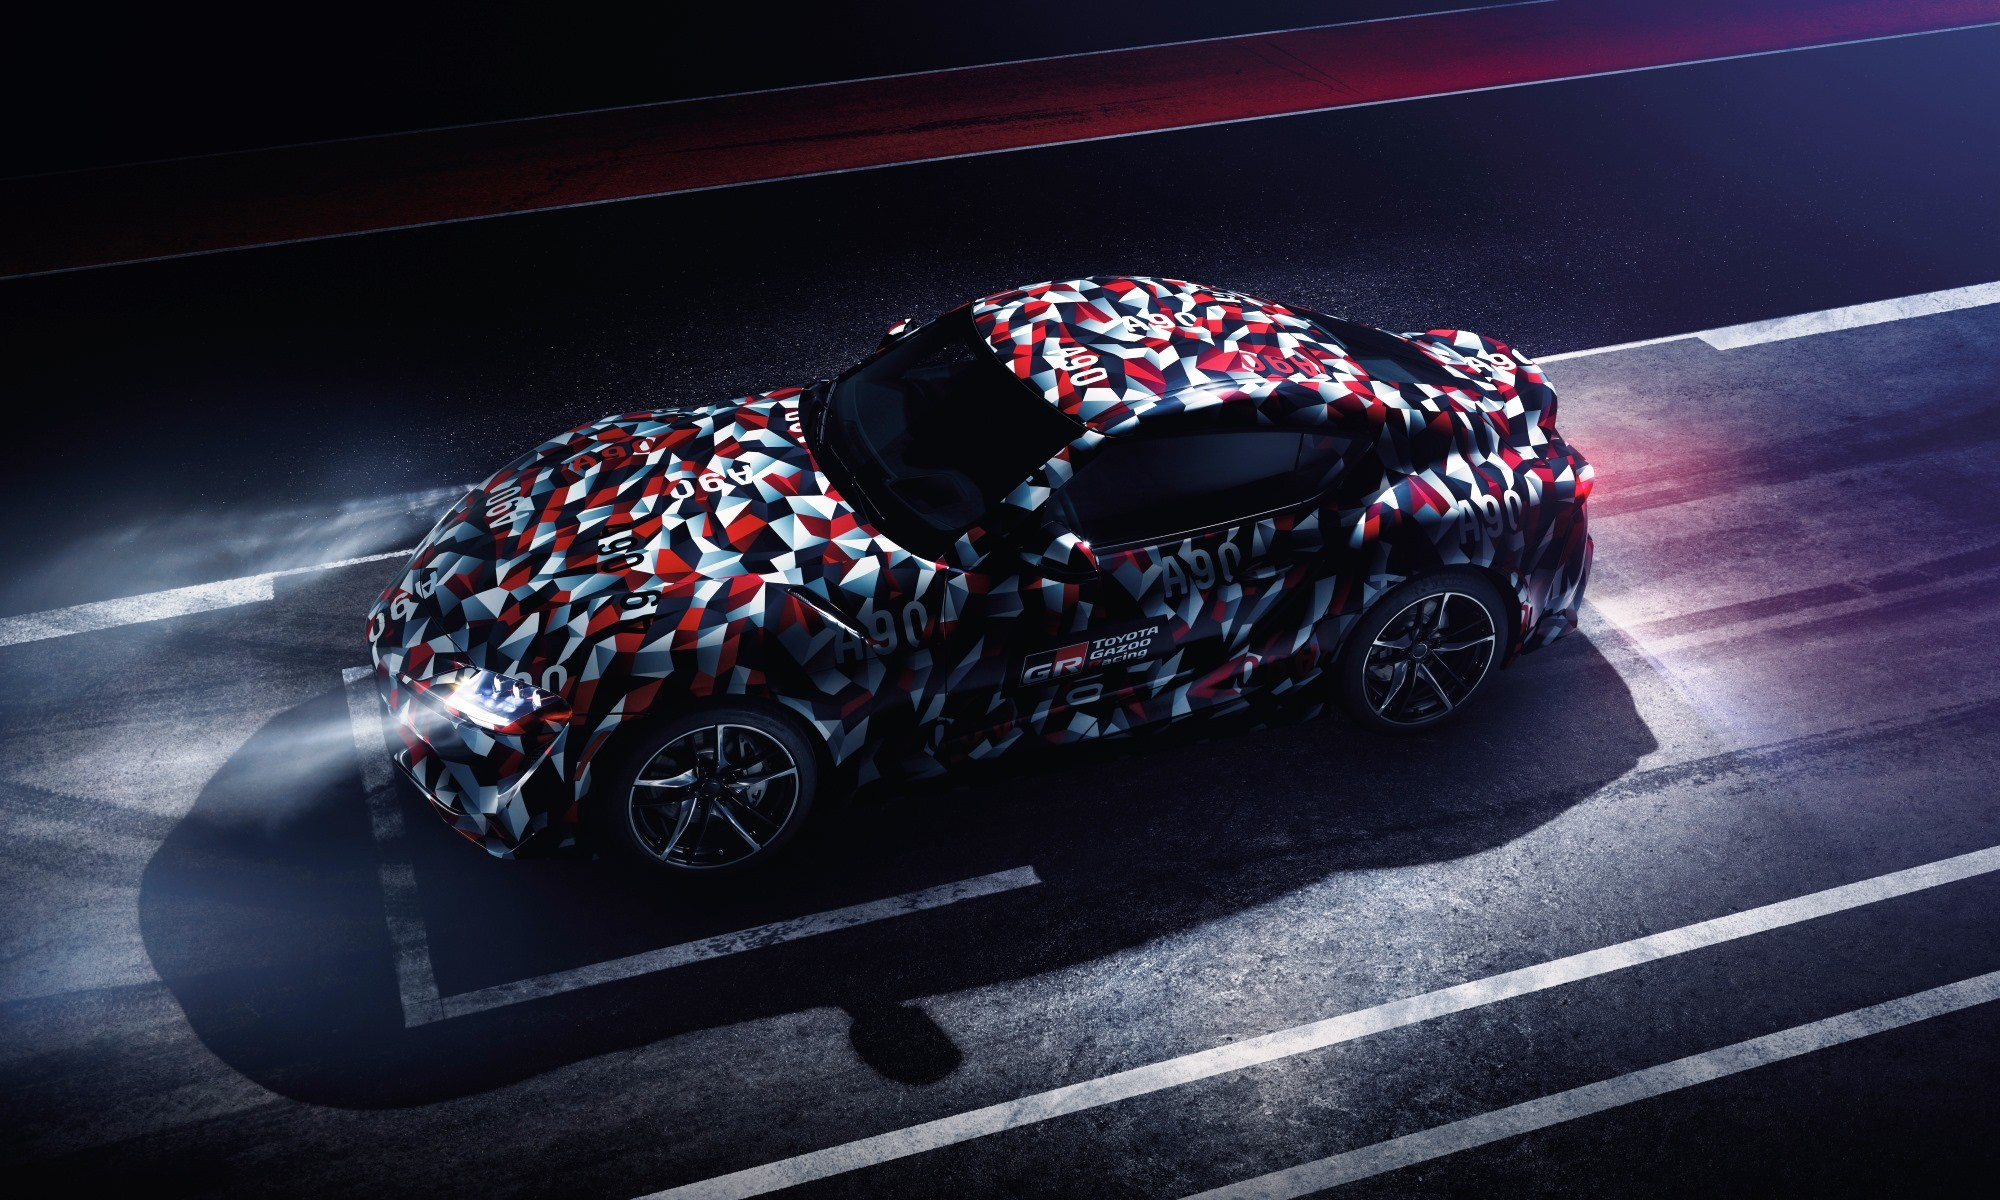 New Toyota Supra in Gazoo Racing camouflage colours